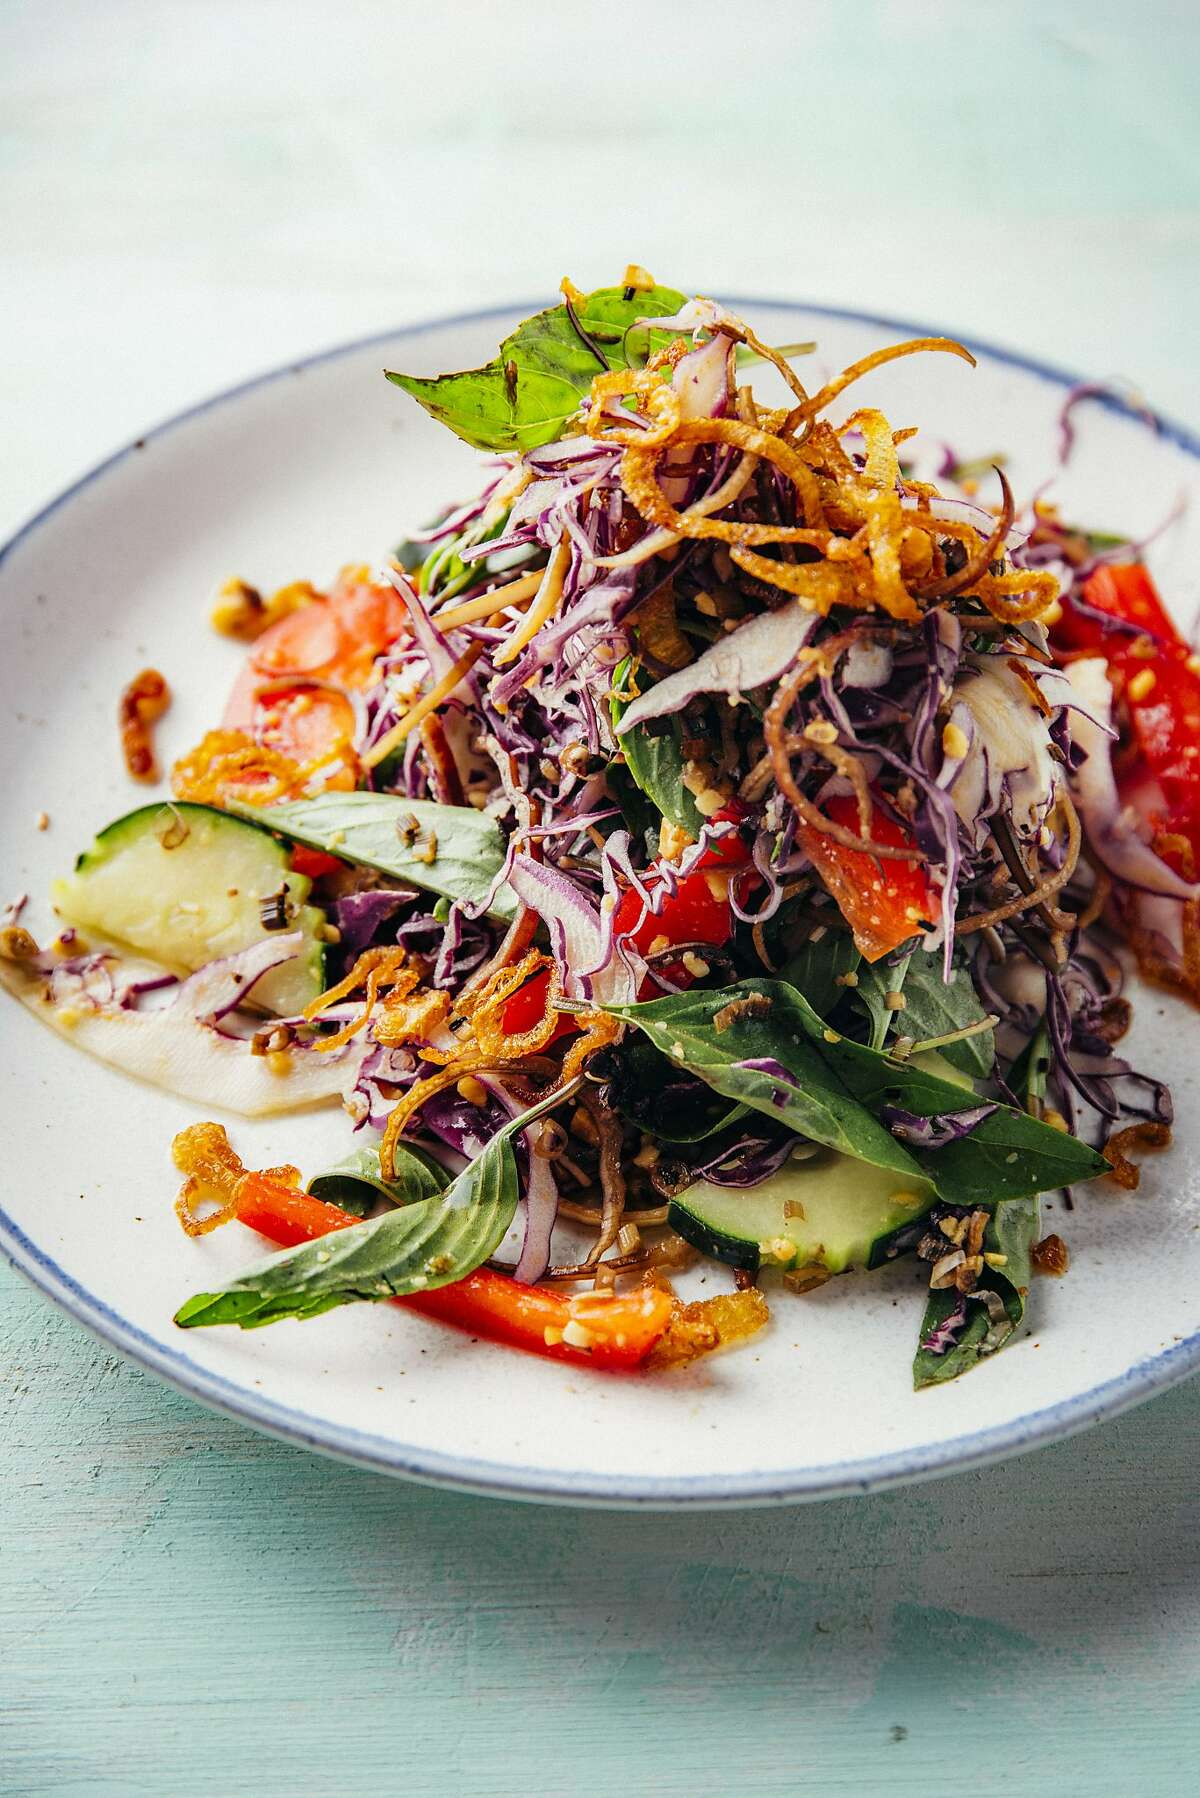 """Nite Yun serves neorm sach moan (Cambodian chicken salad) in her hit Oakland restaurant Nyum Bai. The recipe is featured in the """"We Are La Cocina"""" cookbook."""